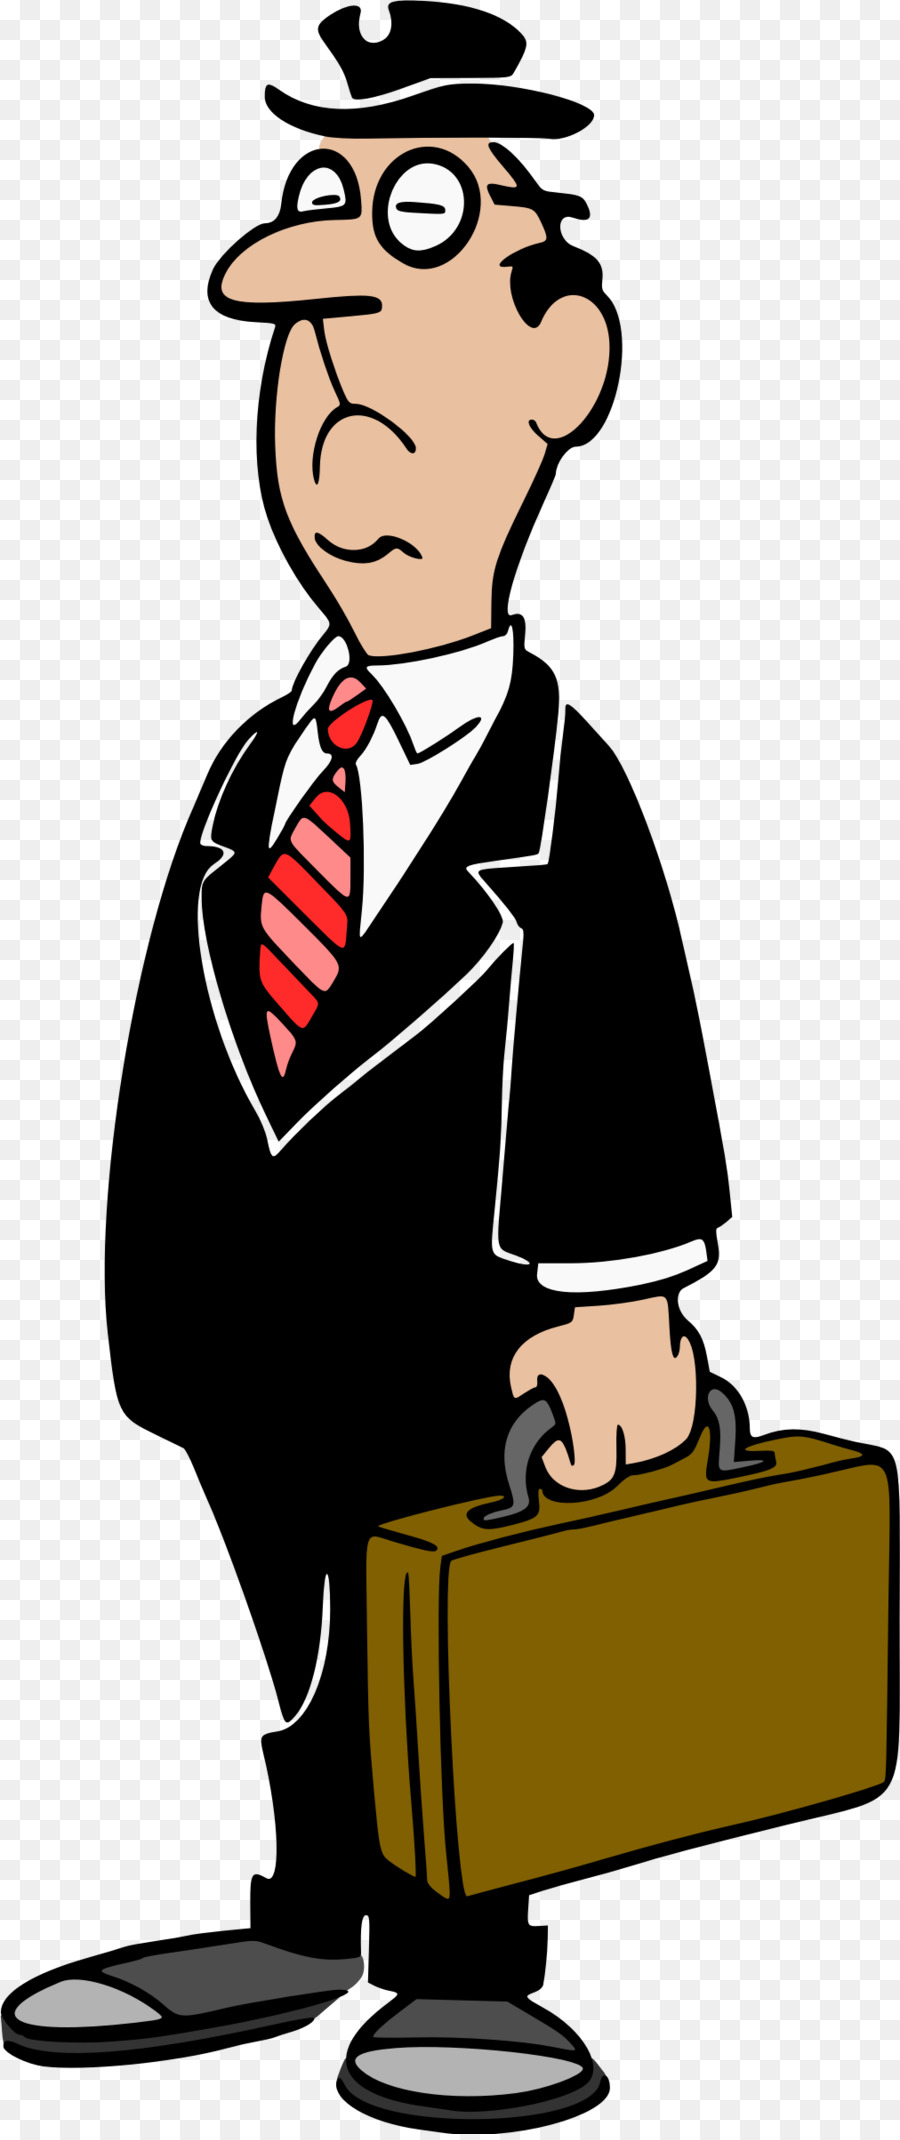 businessperson computer icons clip art business man png download rh kisspng com Clip Art Free Downloads Free Clip Are